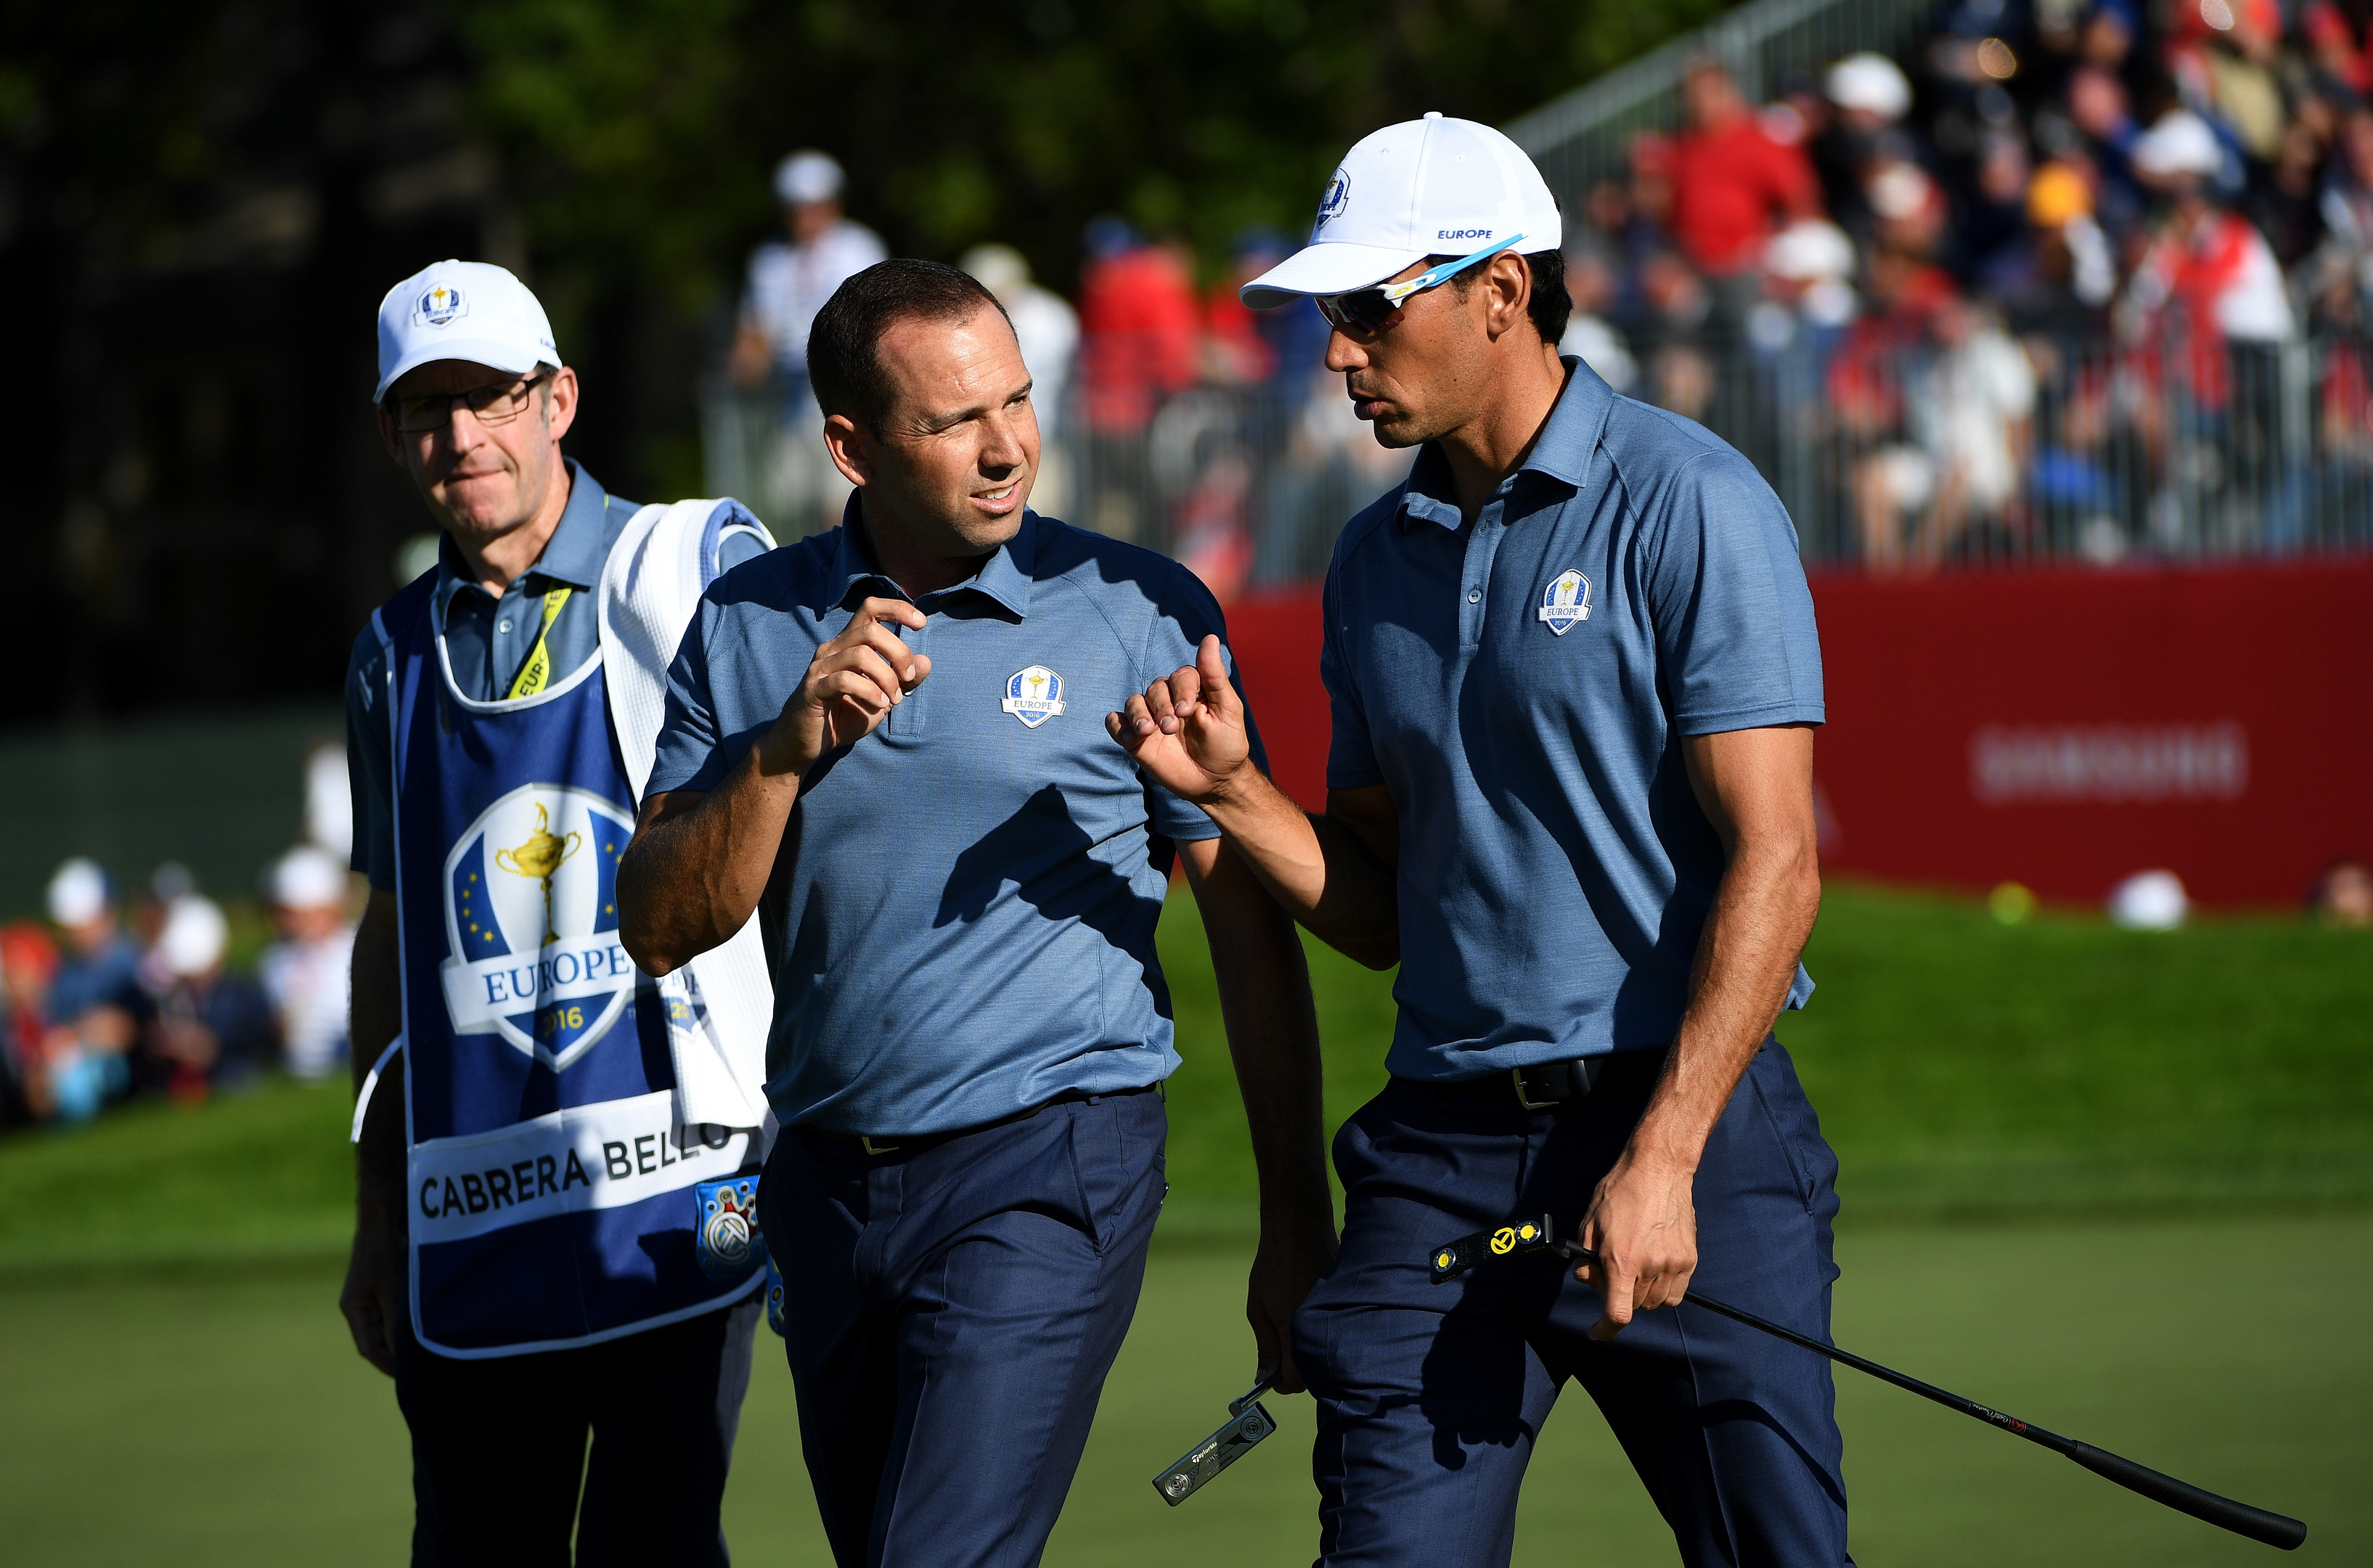 Sergio Garcia and Rafa Cabrera Bello combined to snatch a bit point for Europe.